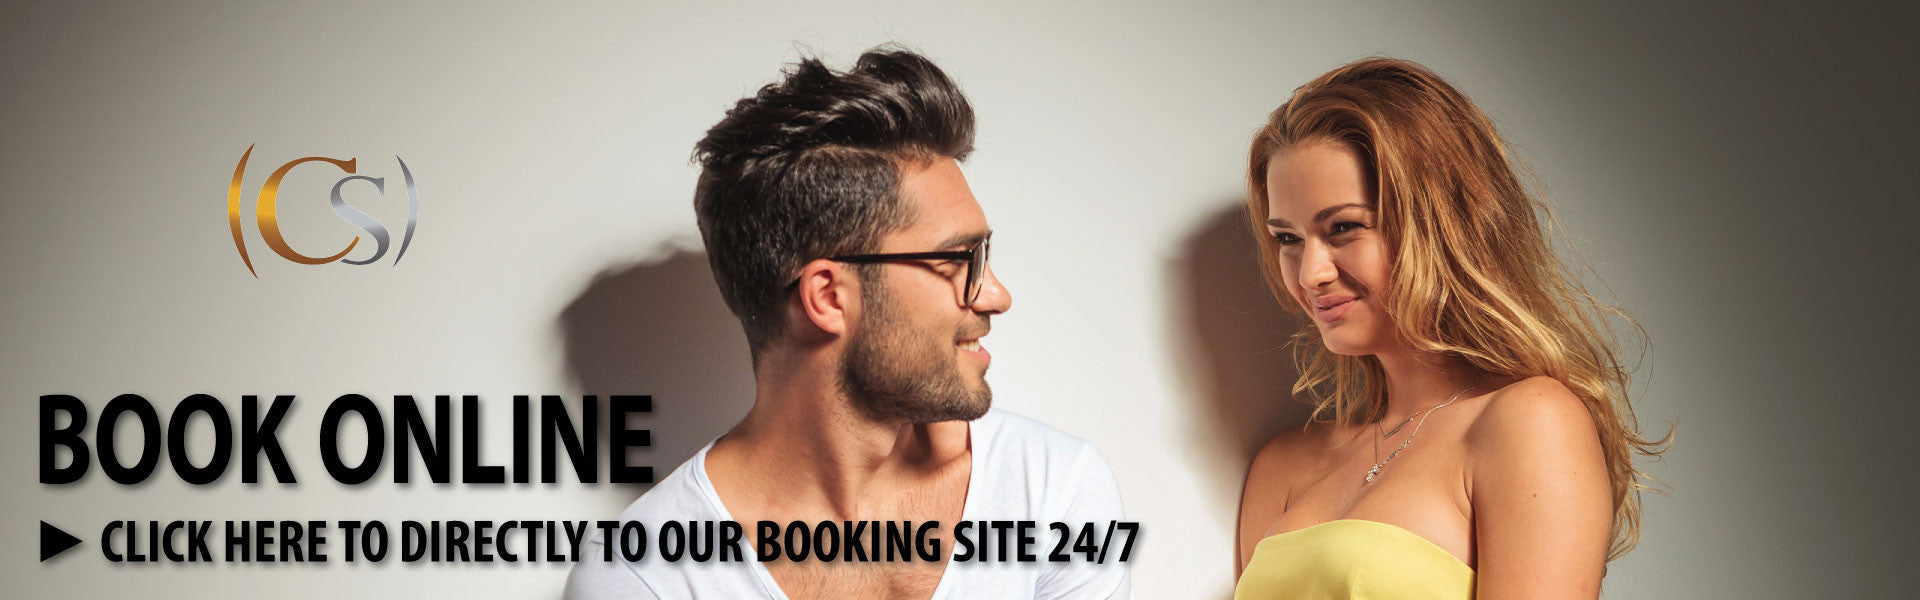 Click here to book online at Christopher Stephens a West Palm Beach Hair Salon